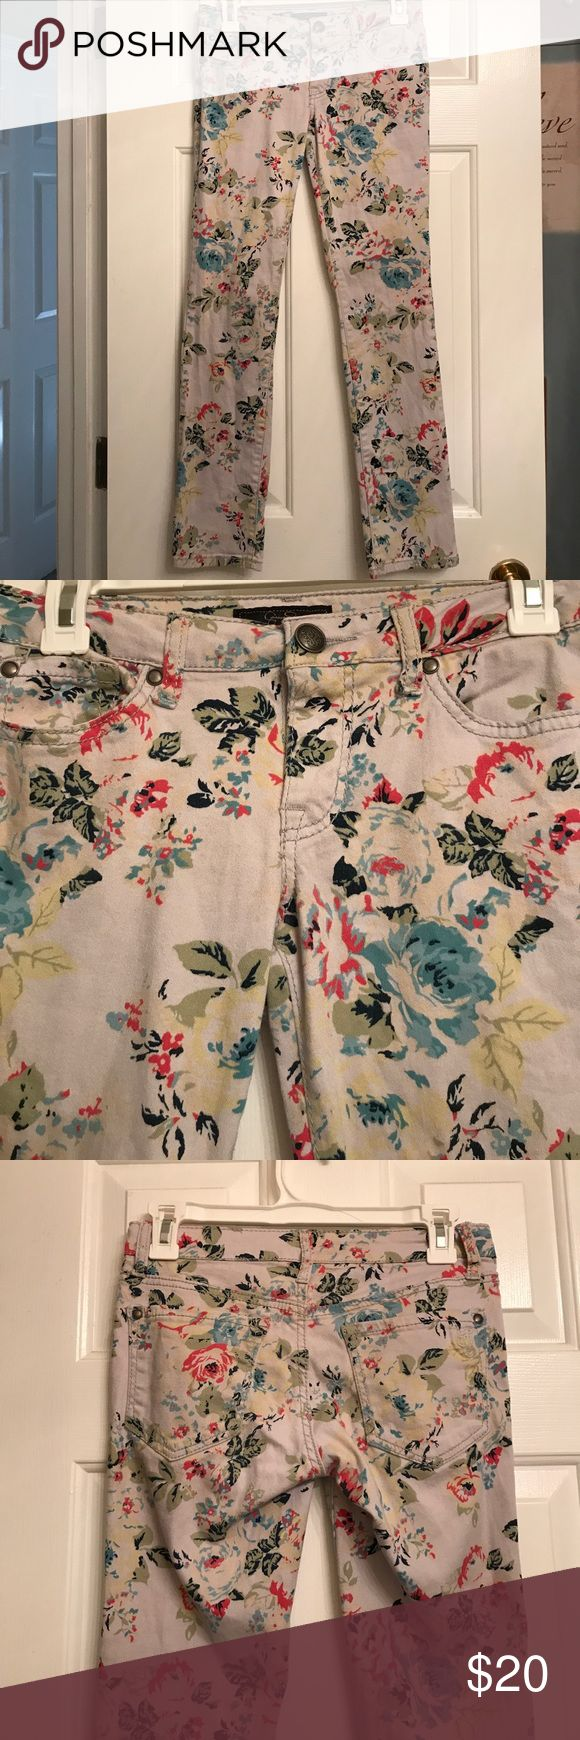 """JESSICA SIMPSON Floral Forever Low Rise Jeans So cute. Made of 98% cotton and 2% spandex. Perfect to wear all year! Size 27. These are low rise and ankle/cropped jeans. Inseam measures 27.5"""" long. Jessica Simpson Jeans Ankle & Cropped"""